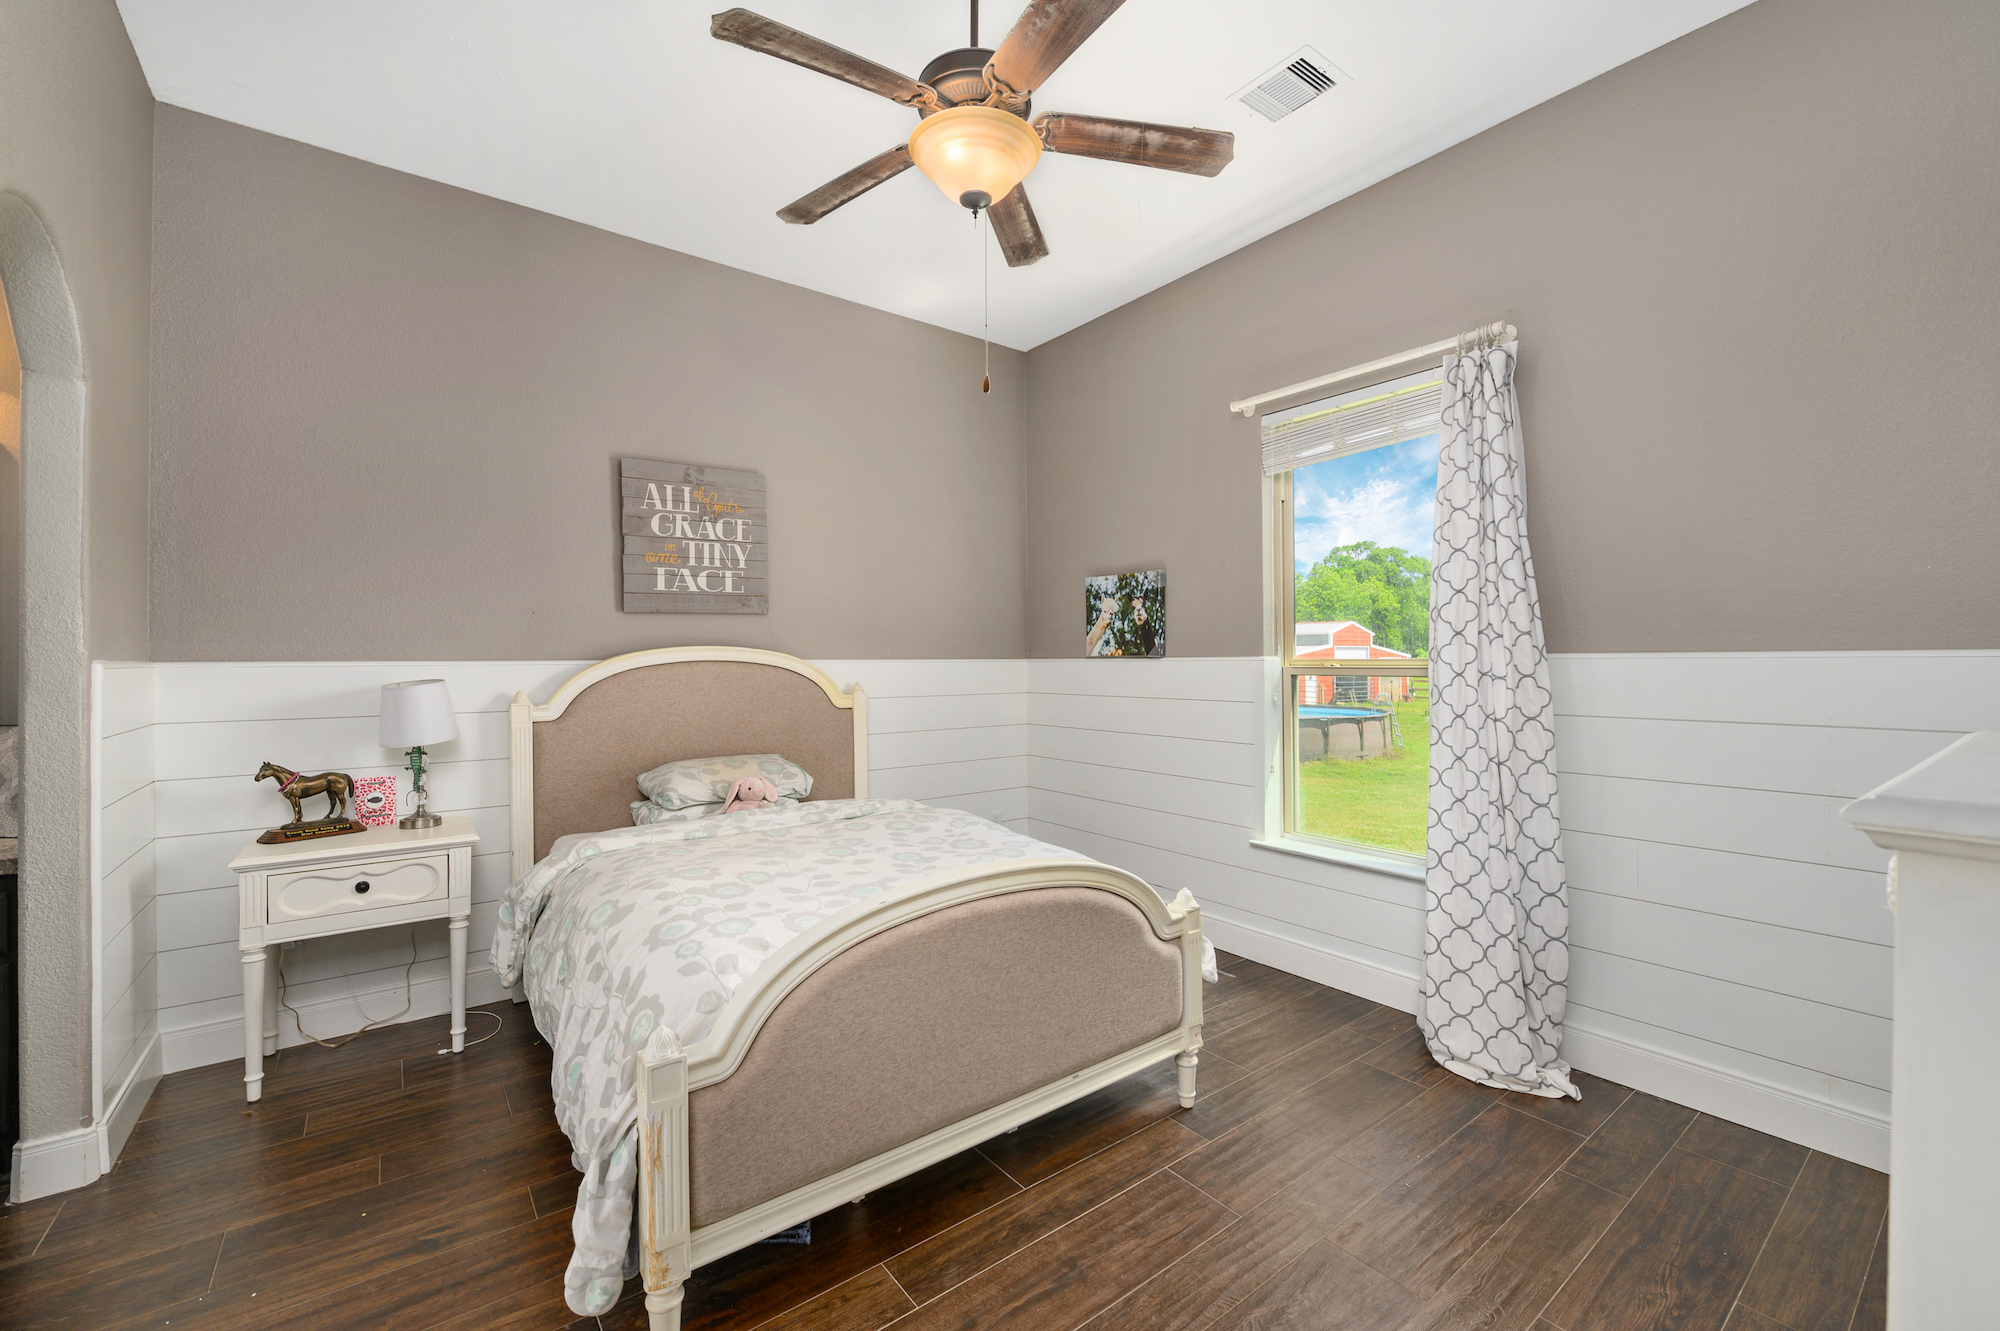 Custom Country Home with Acreage in Sealy - Image 16 of 46